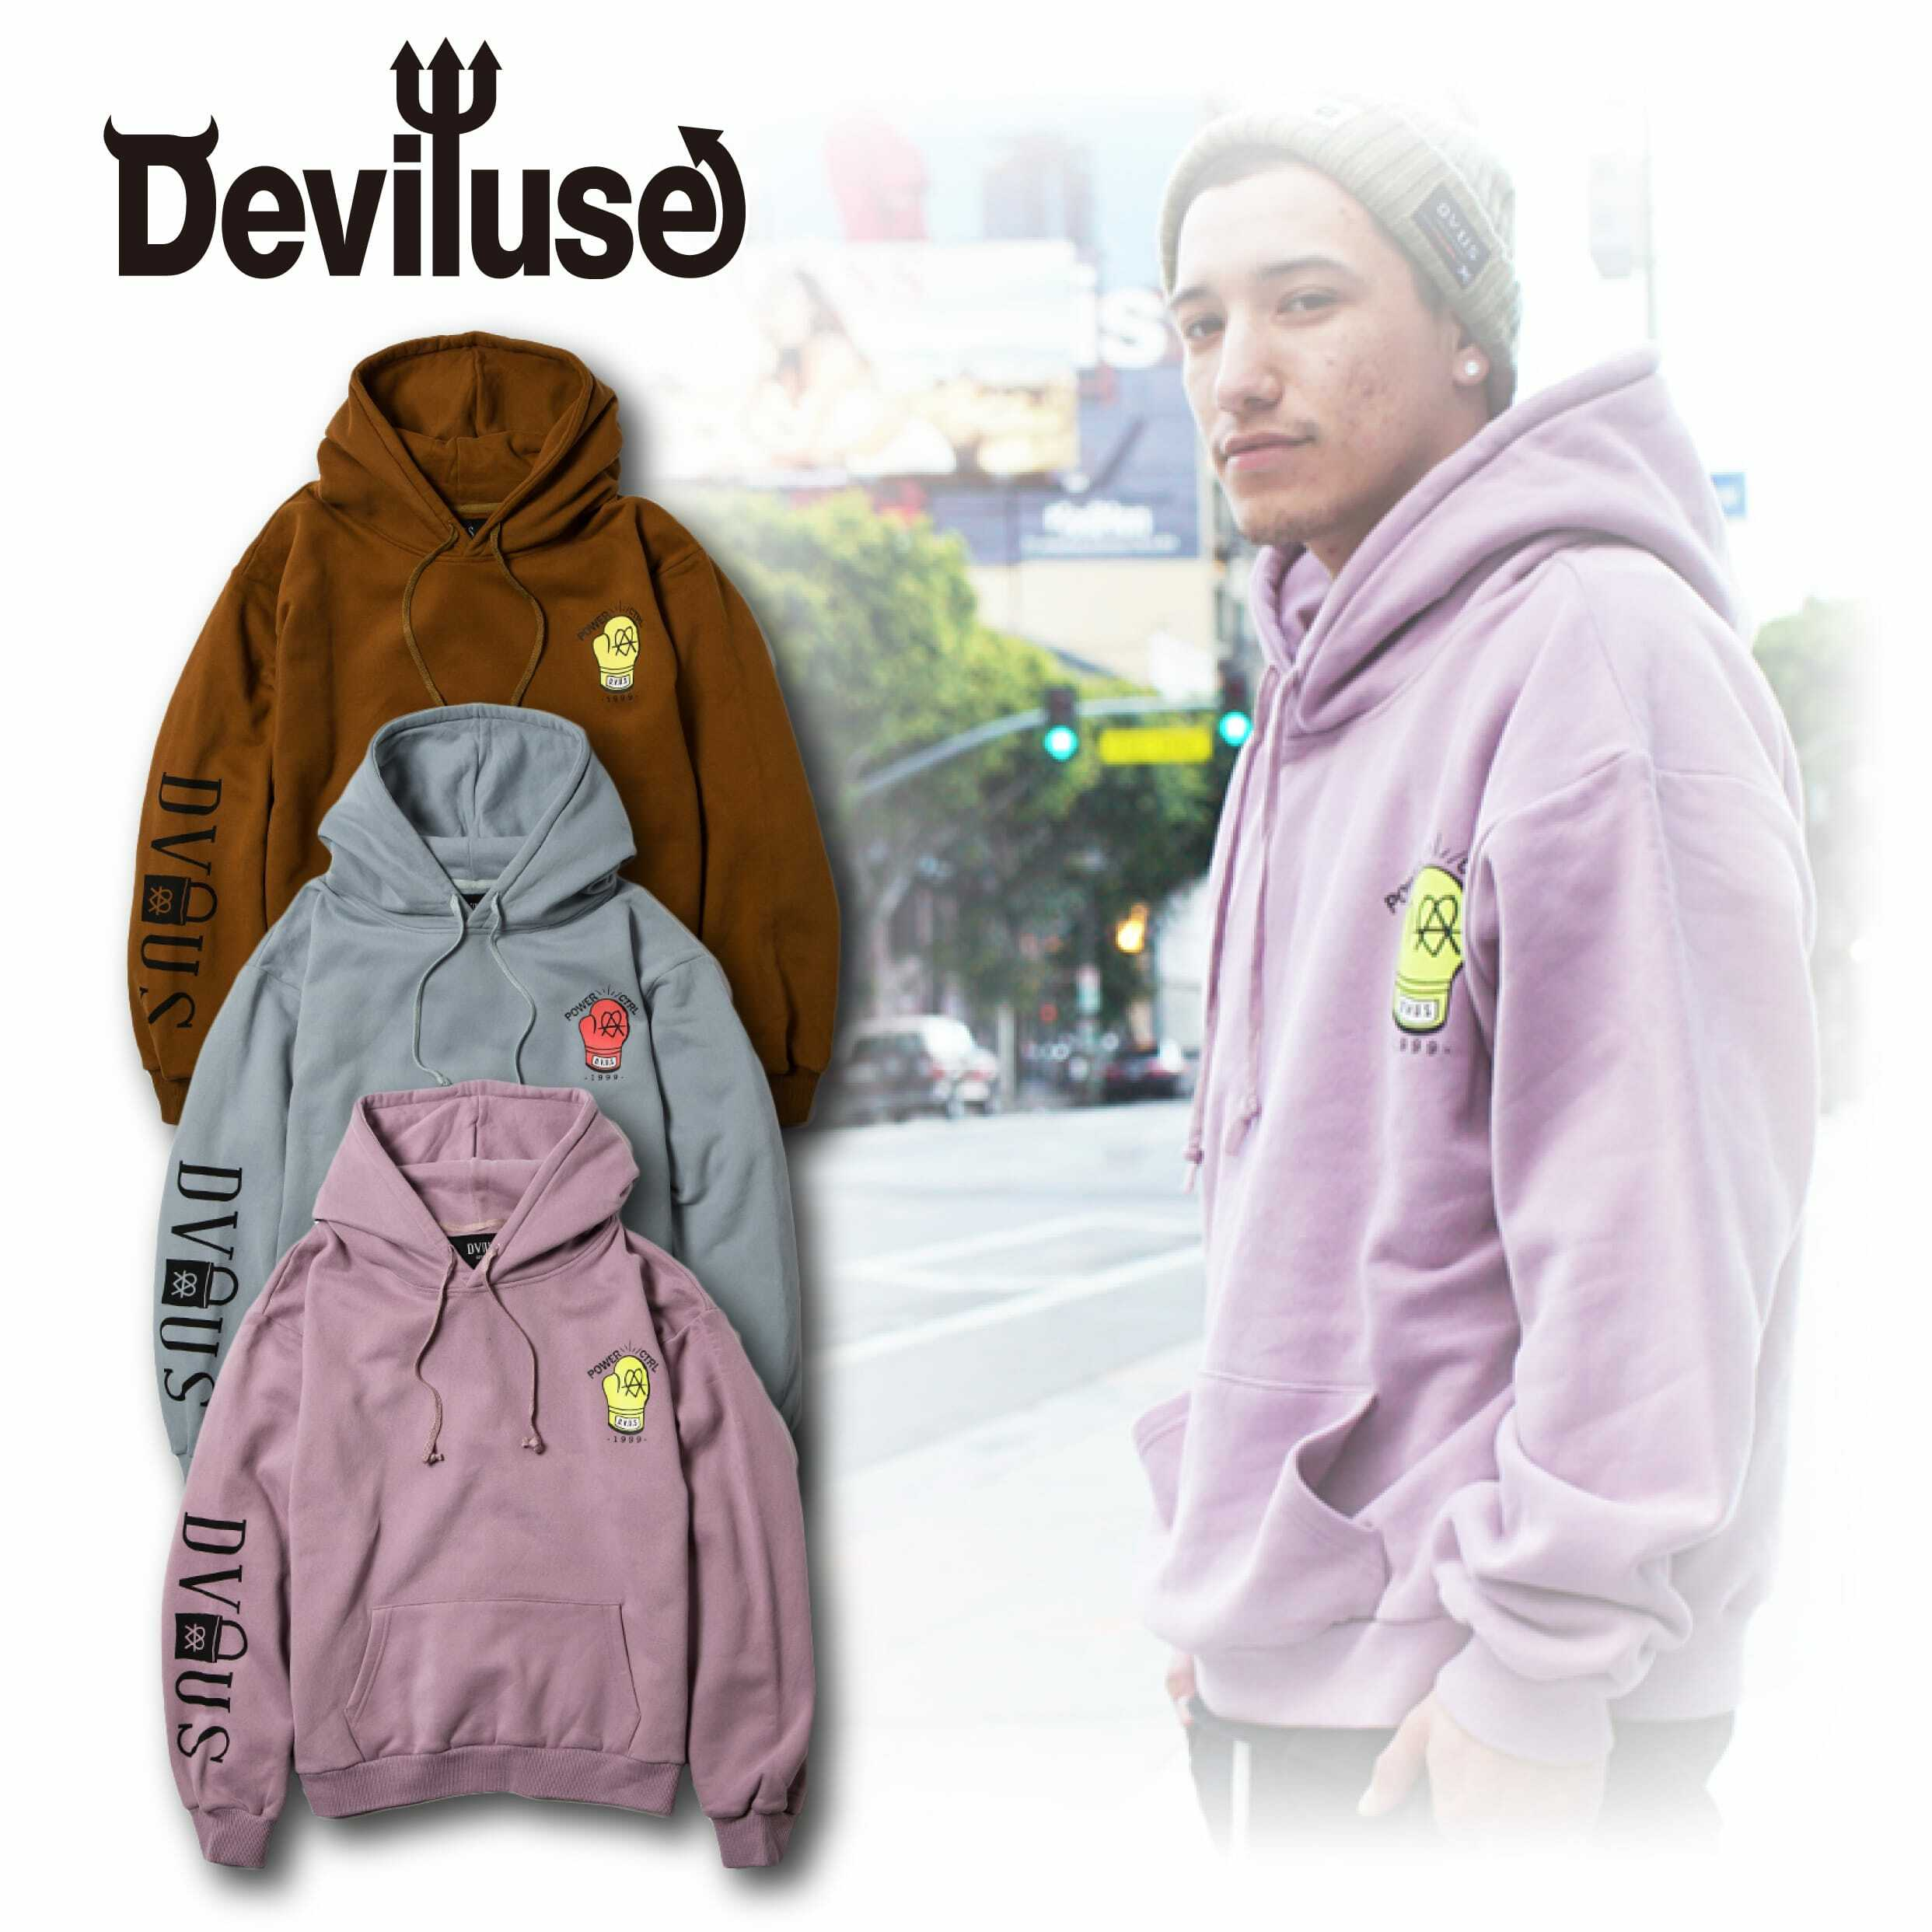 Deviluse(デビルユース) | STAND AGAINST Pullover Hooded